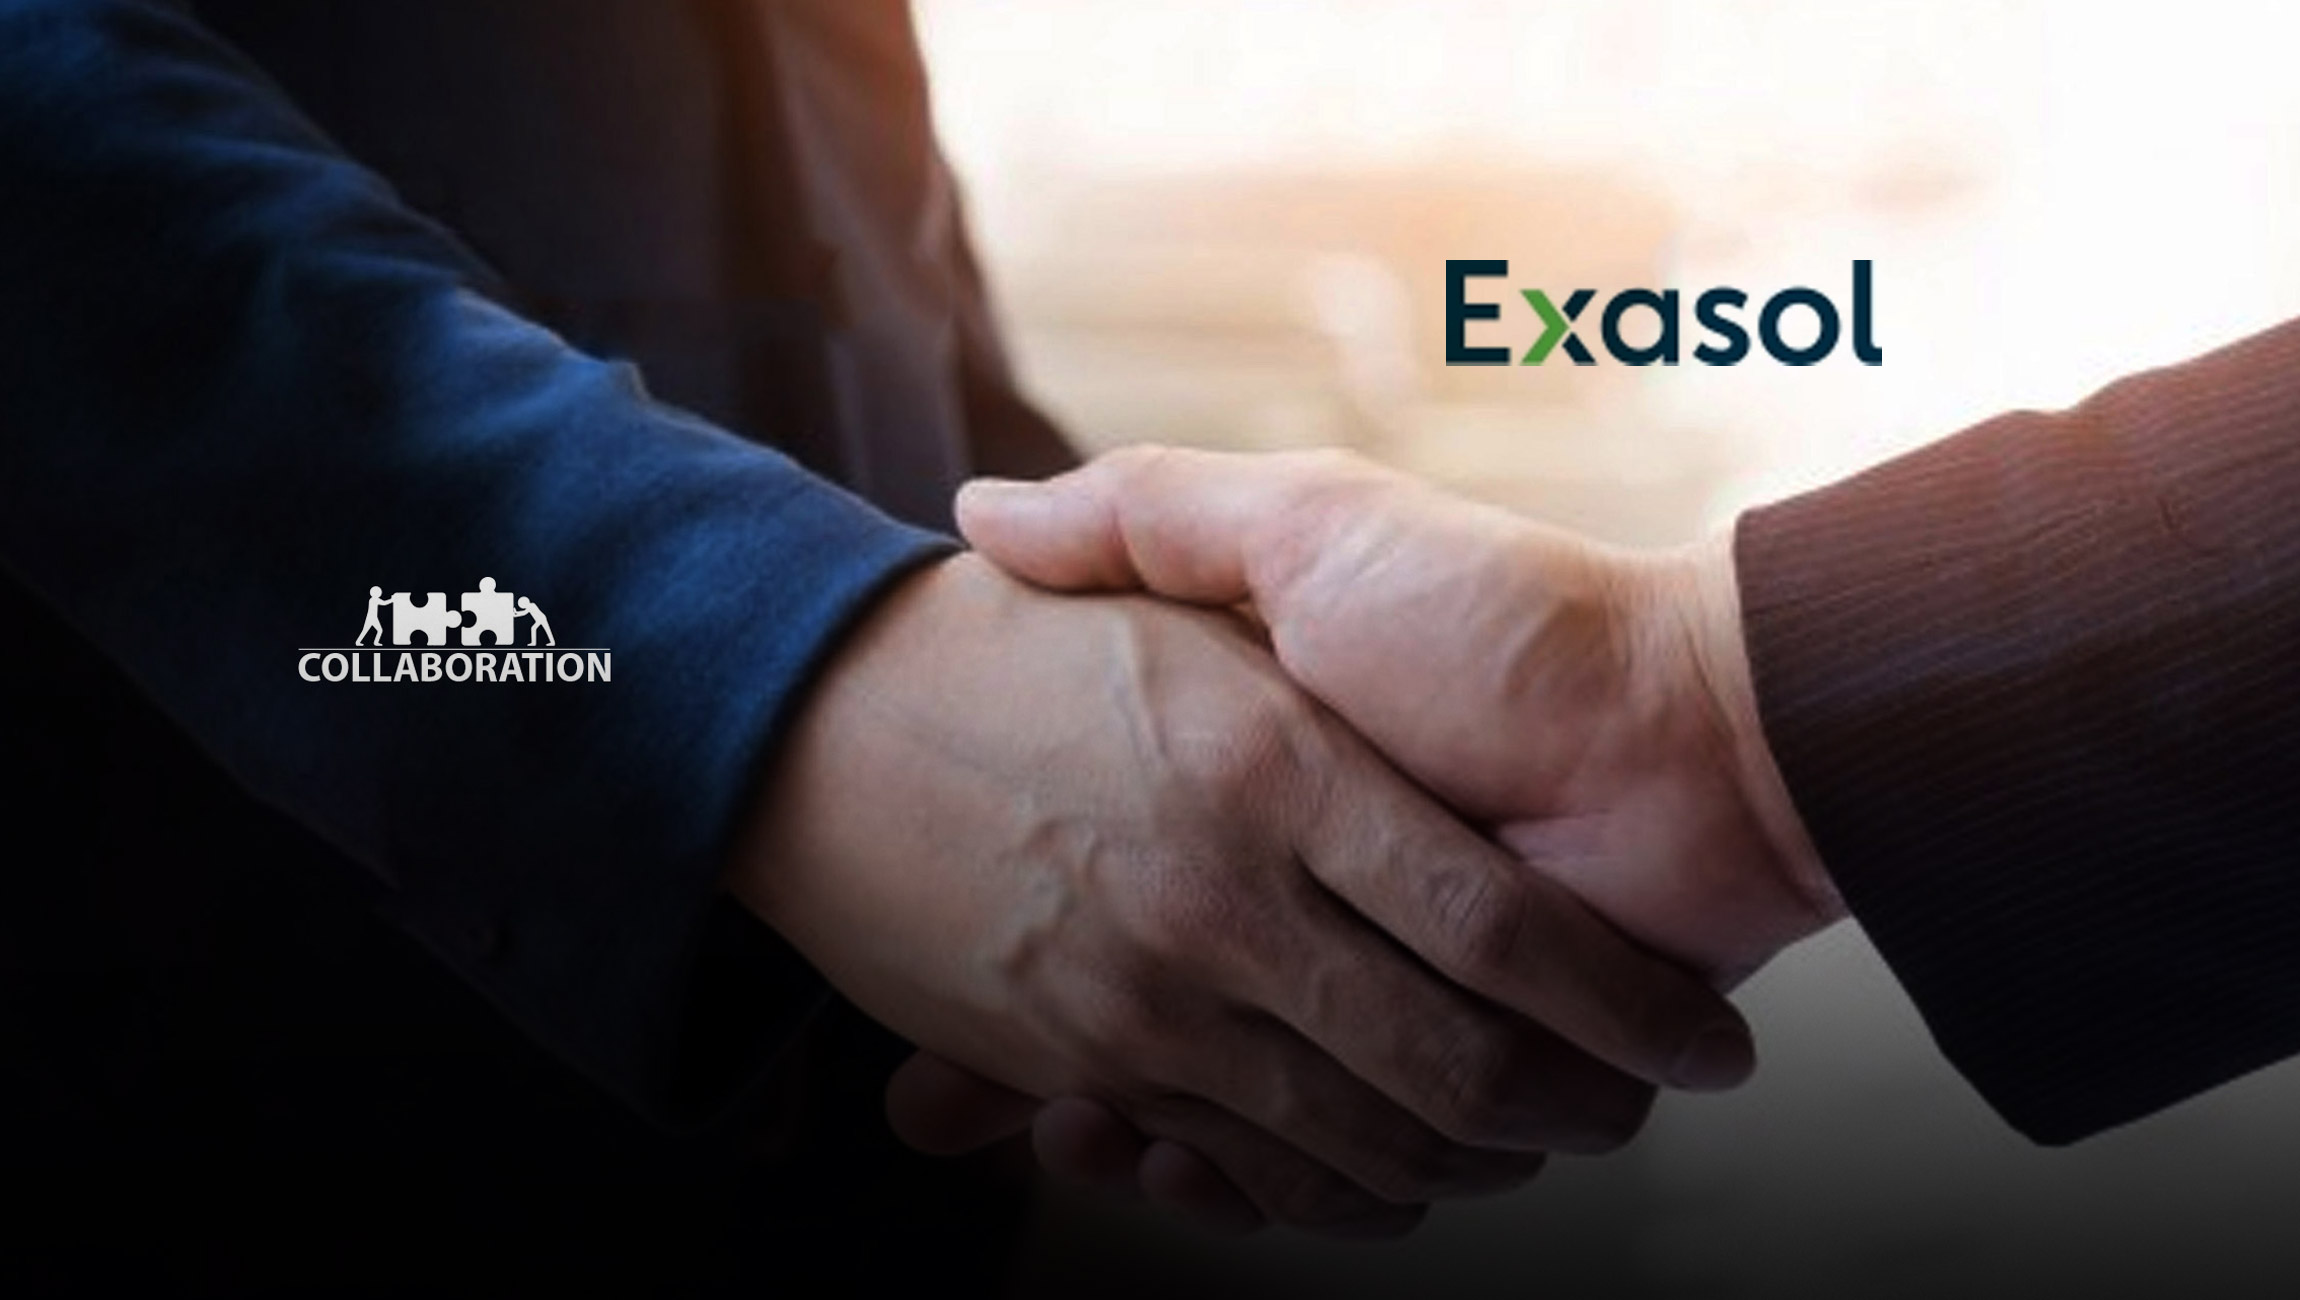 Exasol Announces Partnership With Omniwaresoft